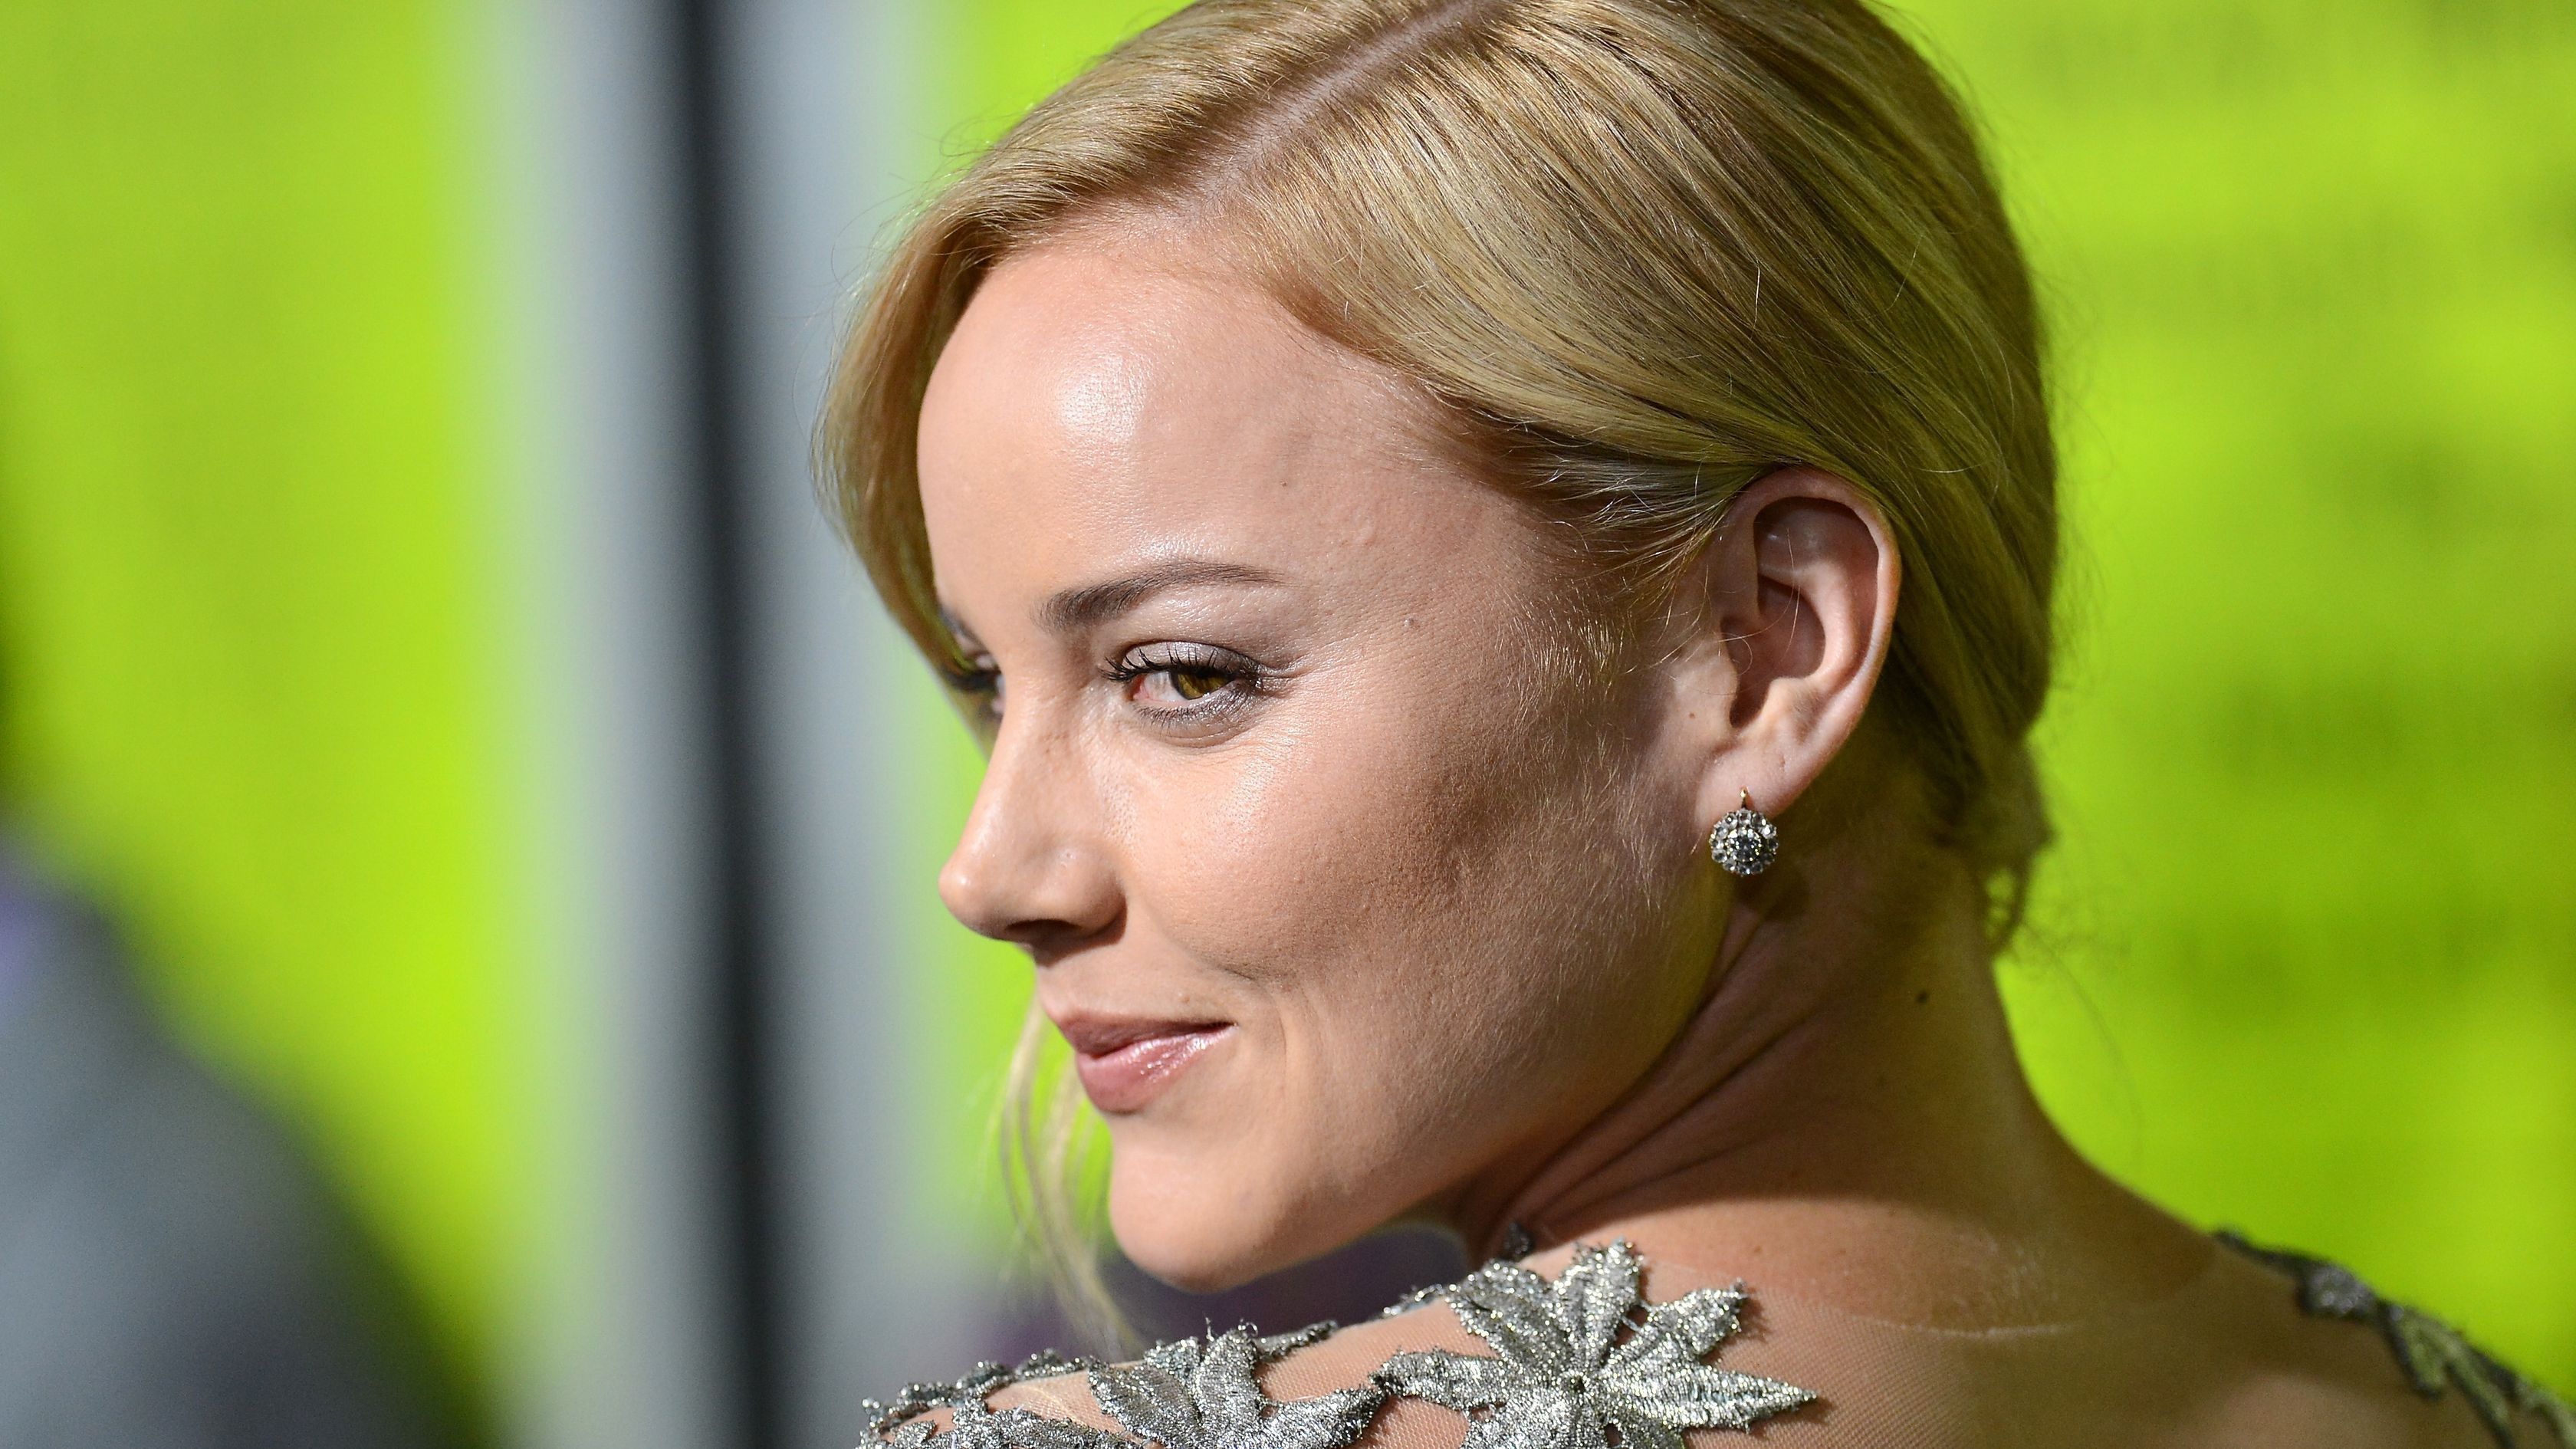 cornish girls Abbie cornish stars in the girl, as a young mother, ashley, who loses custody of  her young son because of a lack of money when she decides.